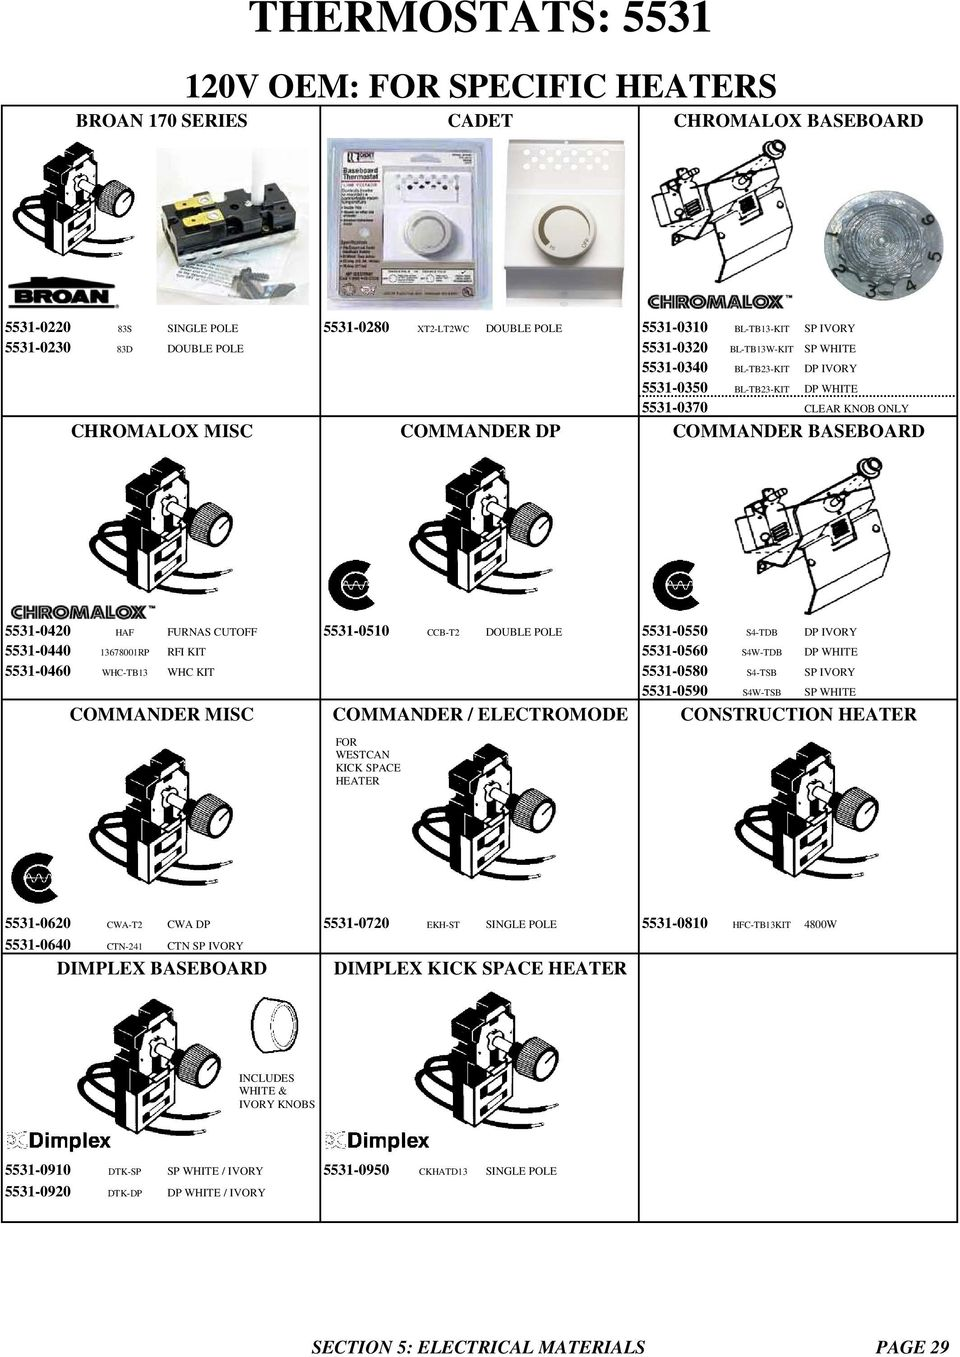 Thermostats V Oem For Specific Heaters Broan 170 Series Cadet Baseboard Heater Wiring Diagram 120 Volts Ccb T2 Double Pole 5531 0550 S4 Tdb Dp Ivory 0440